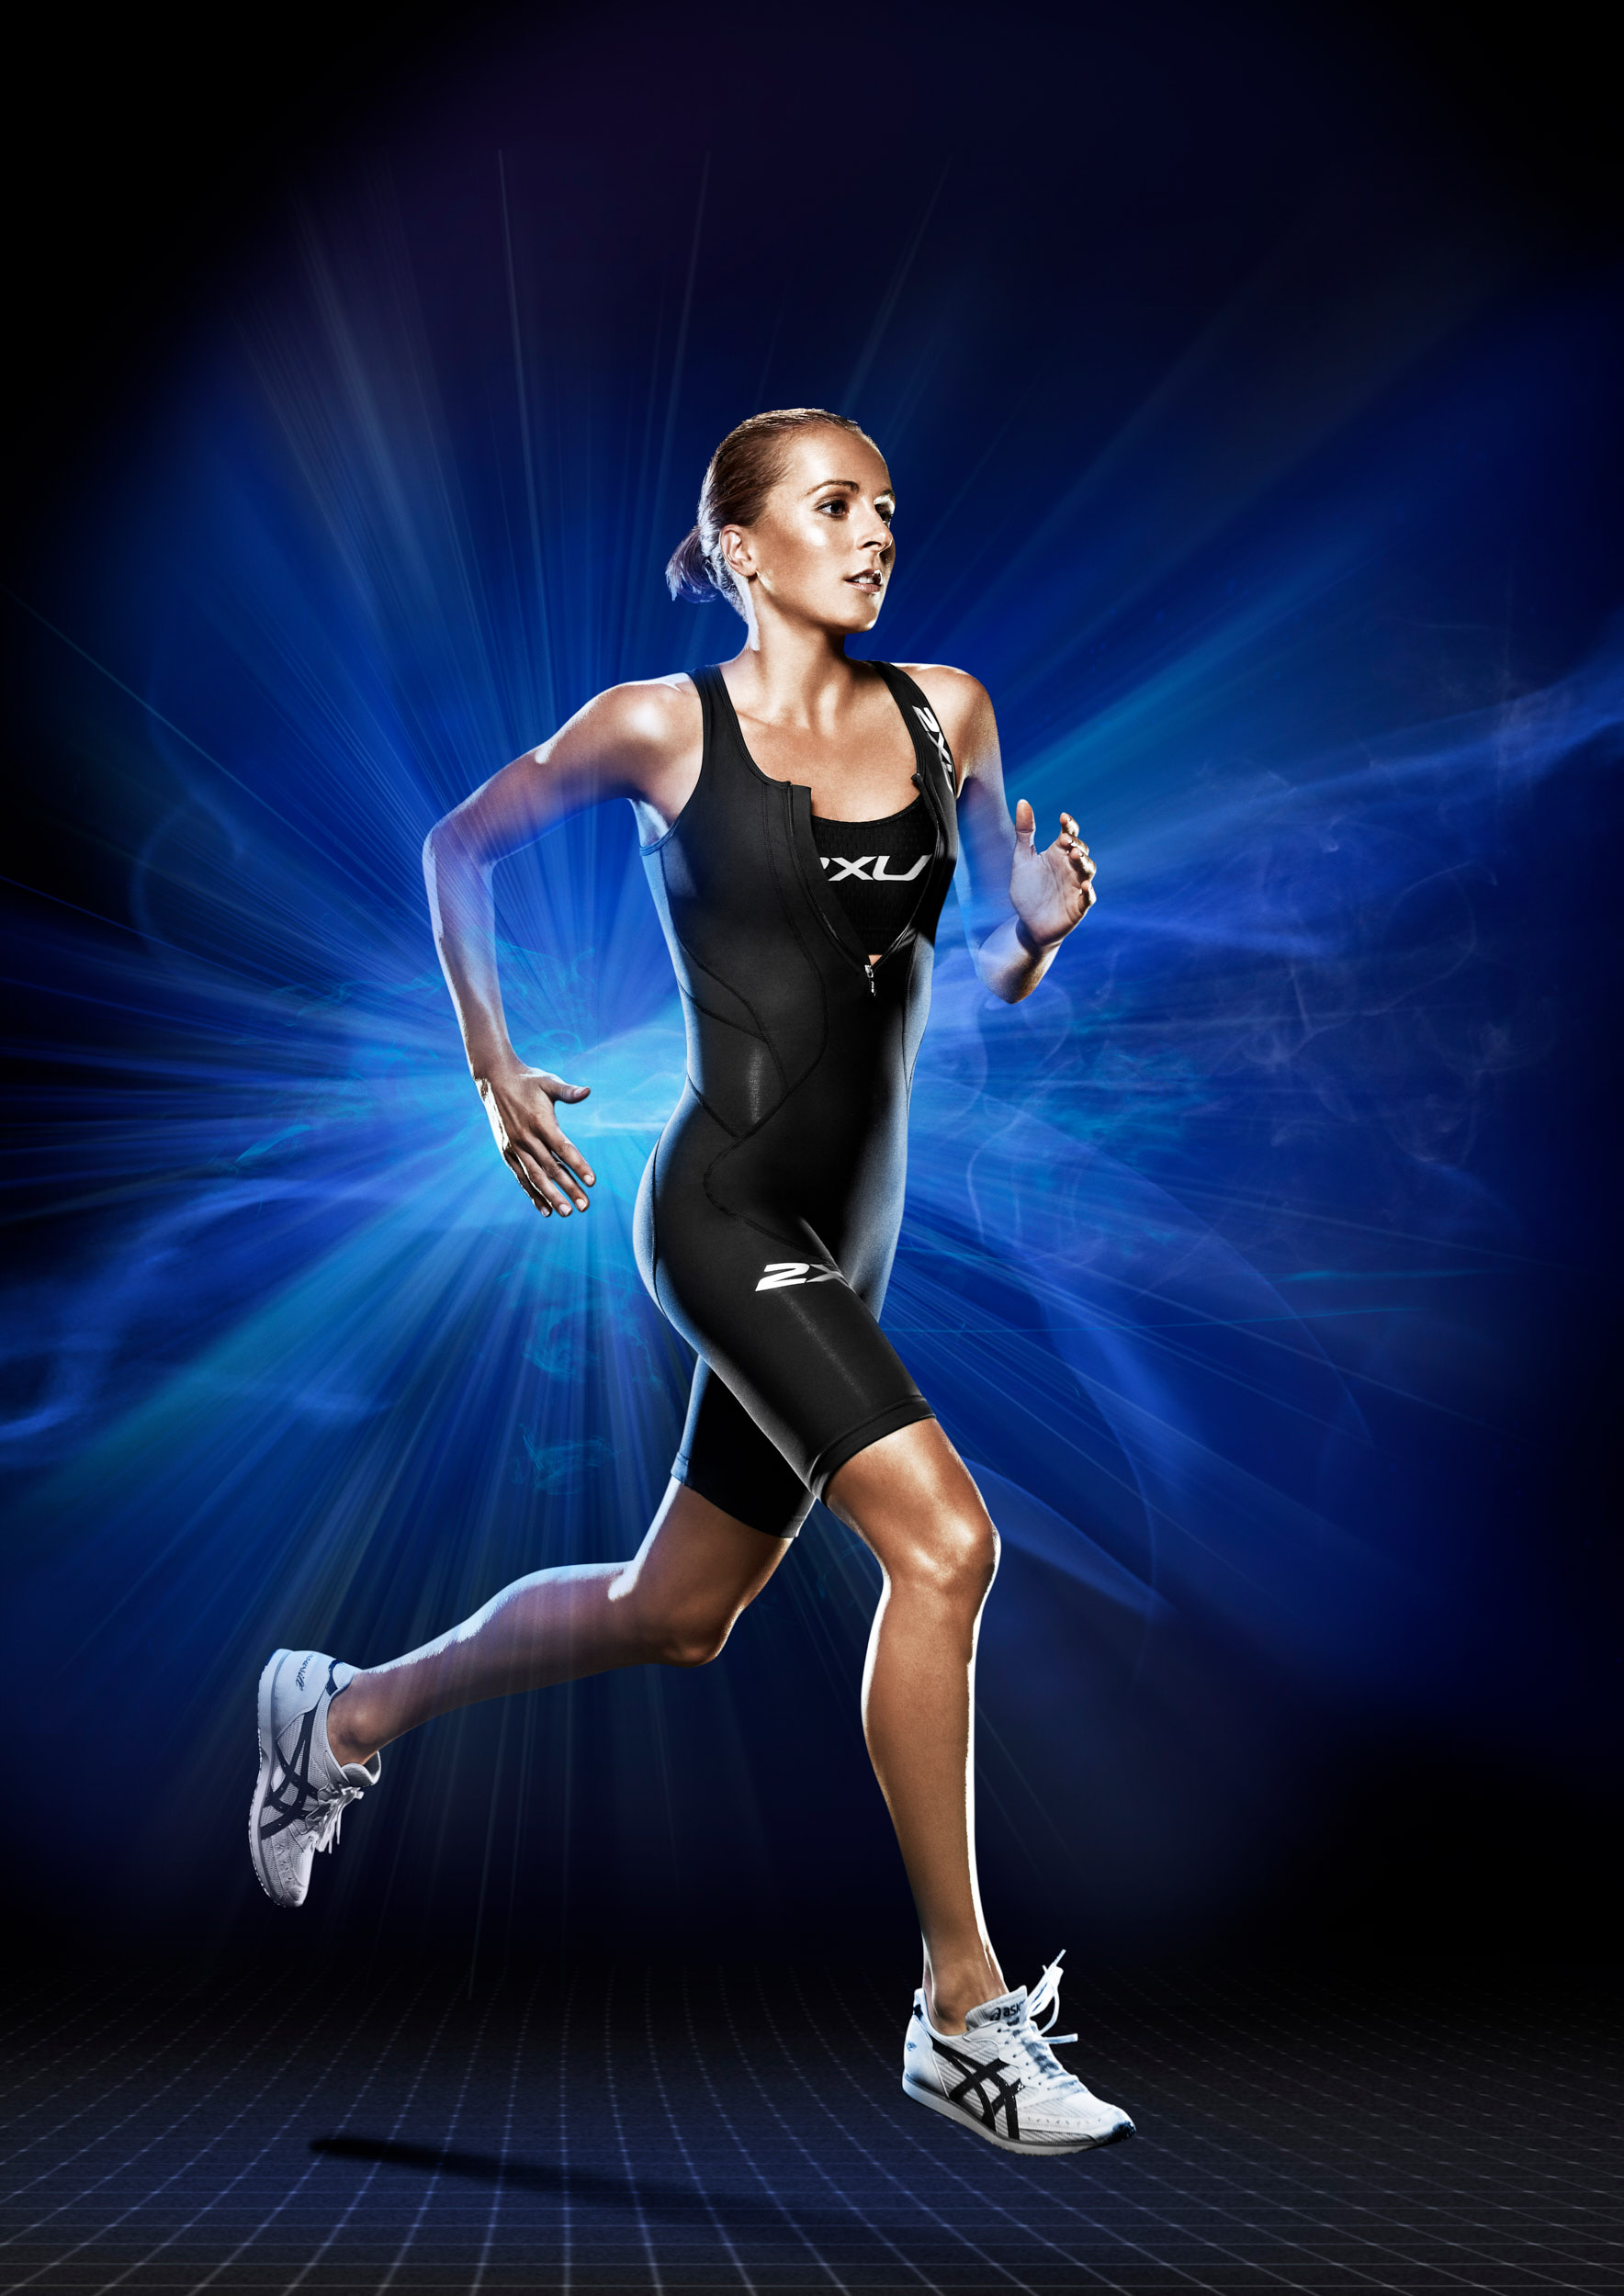 2XU_EmmaSnowsill_Xform_with grid.jpg